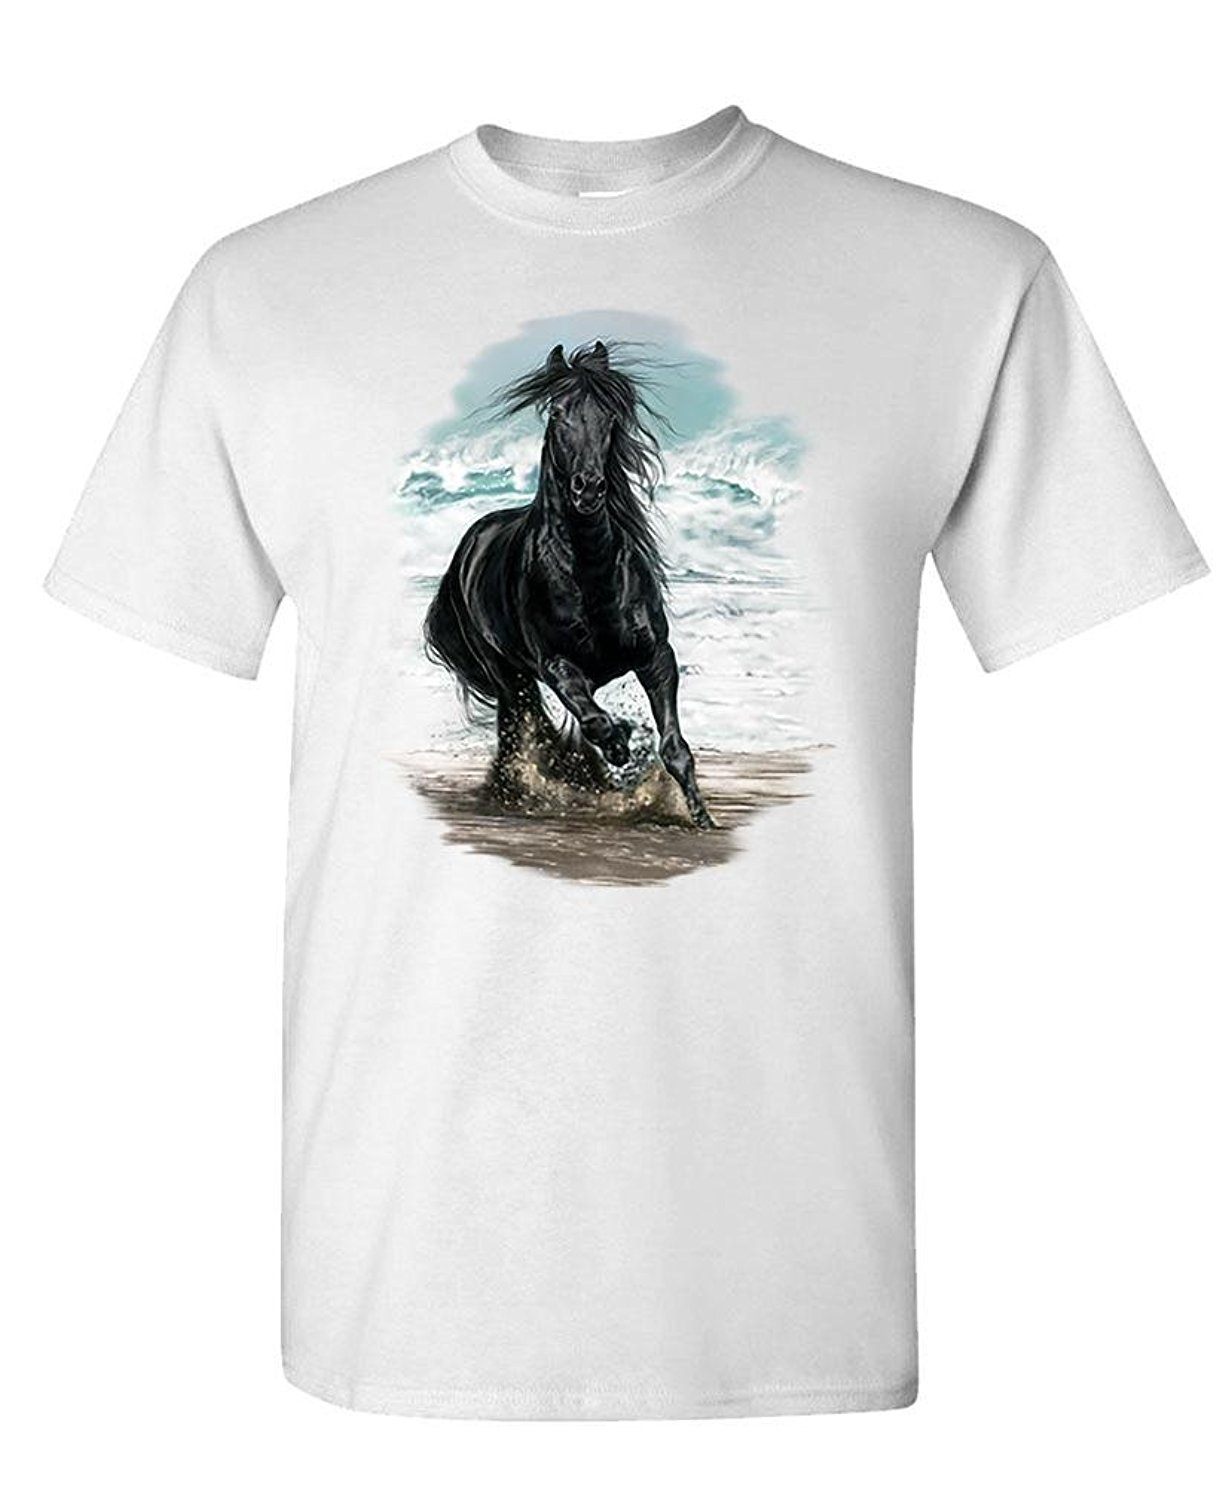 High Quality Tee Shirts Design Promotion-Shop for High Quality ...